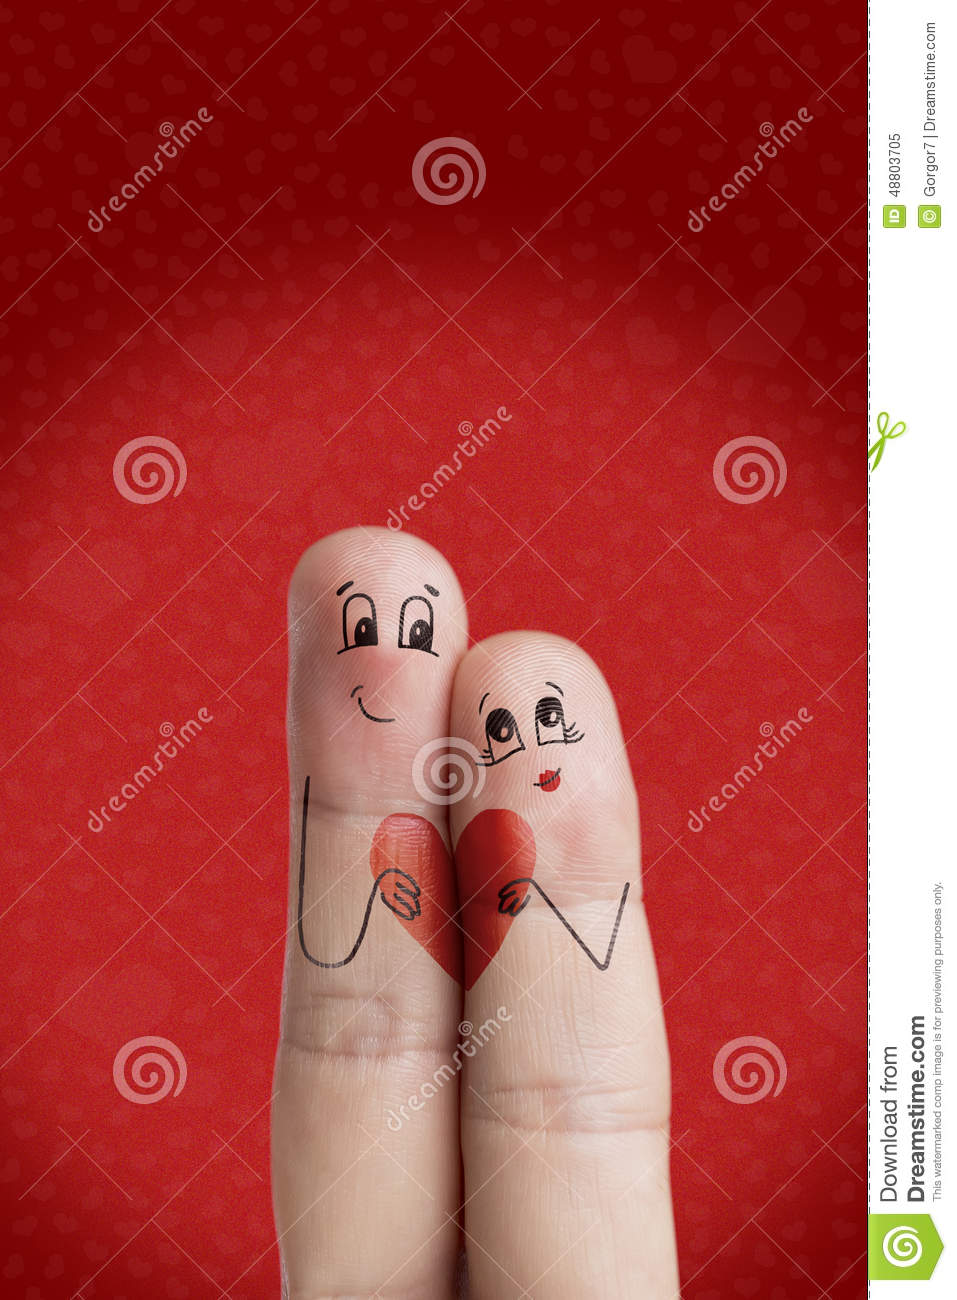 Dating couple encounter 50 smile smiling